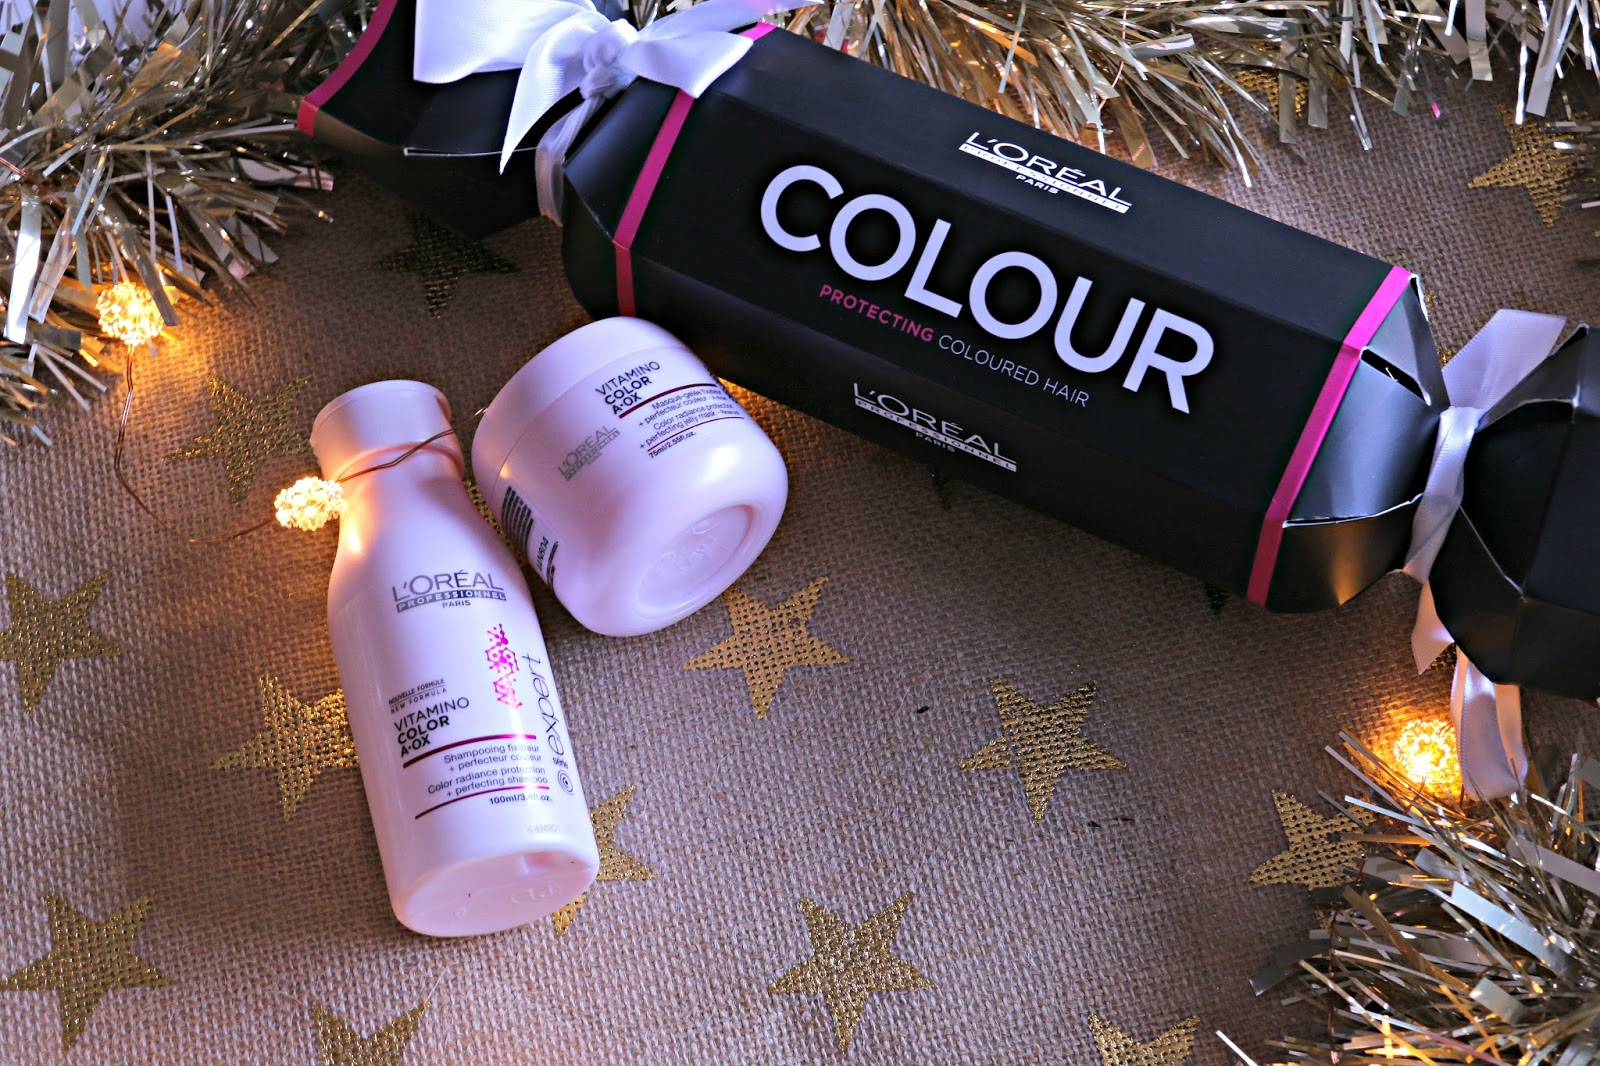 L'Oreal Professionnel Cracker Série Expert Vitamino Colour shampoo and conditioner Image